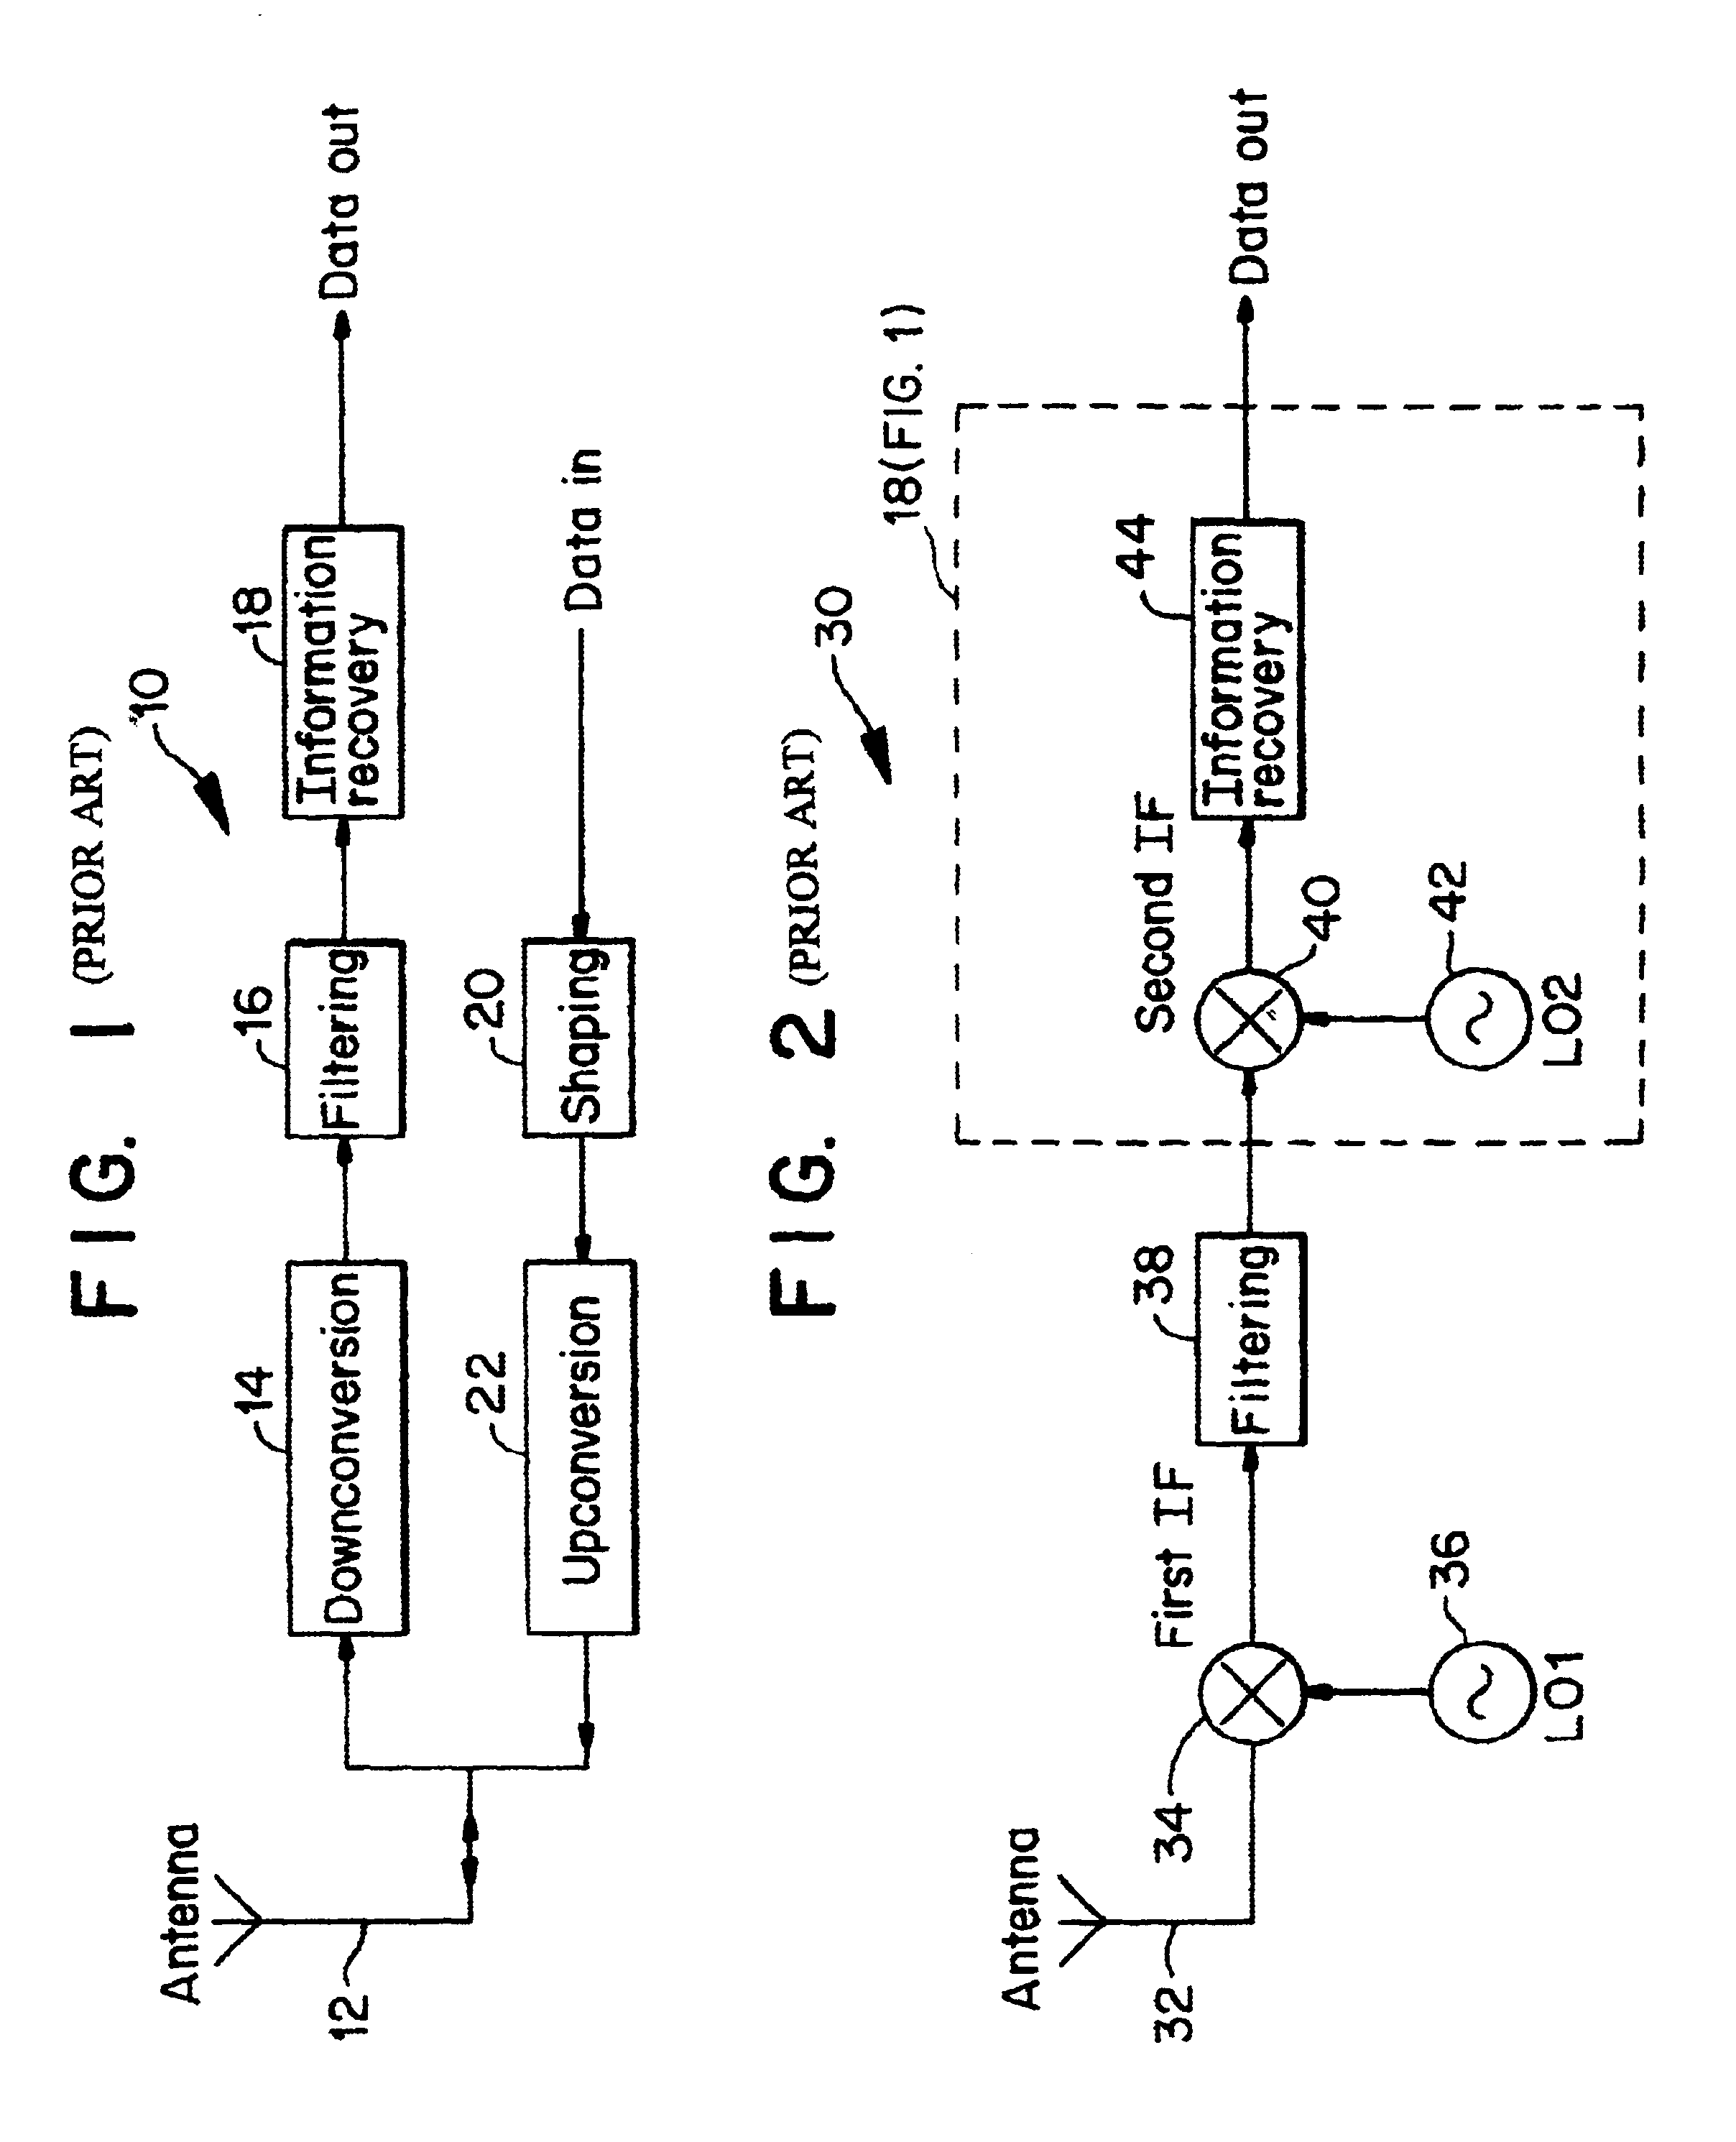 patent us6633550 - radio transceiver on a chip